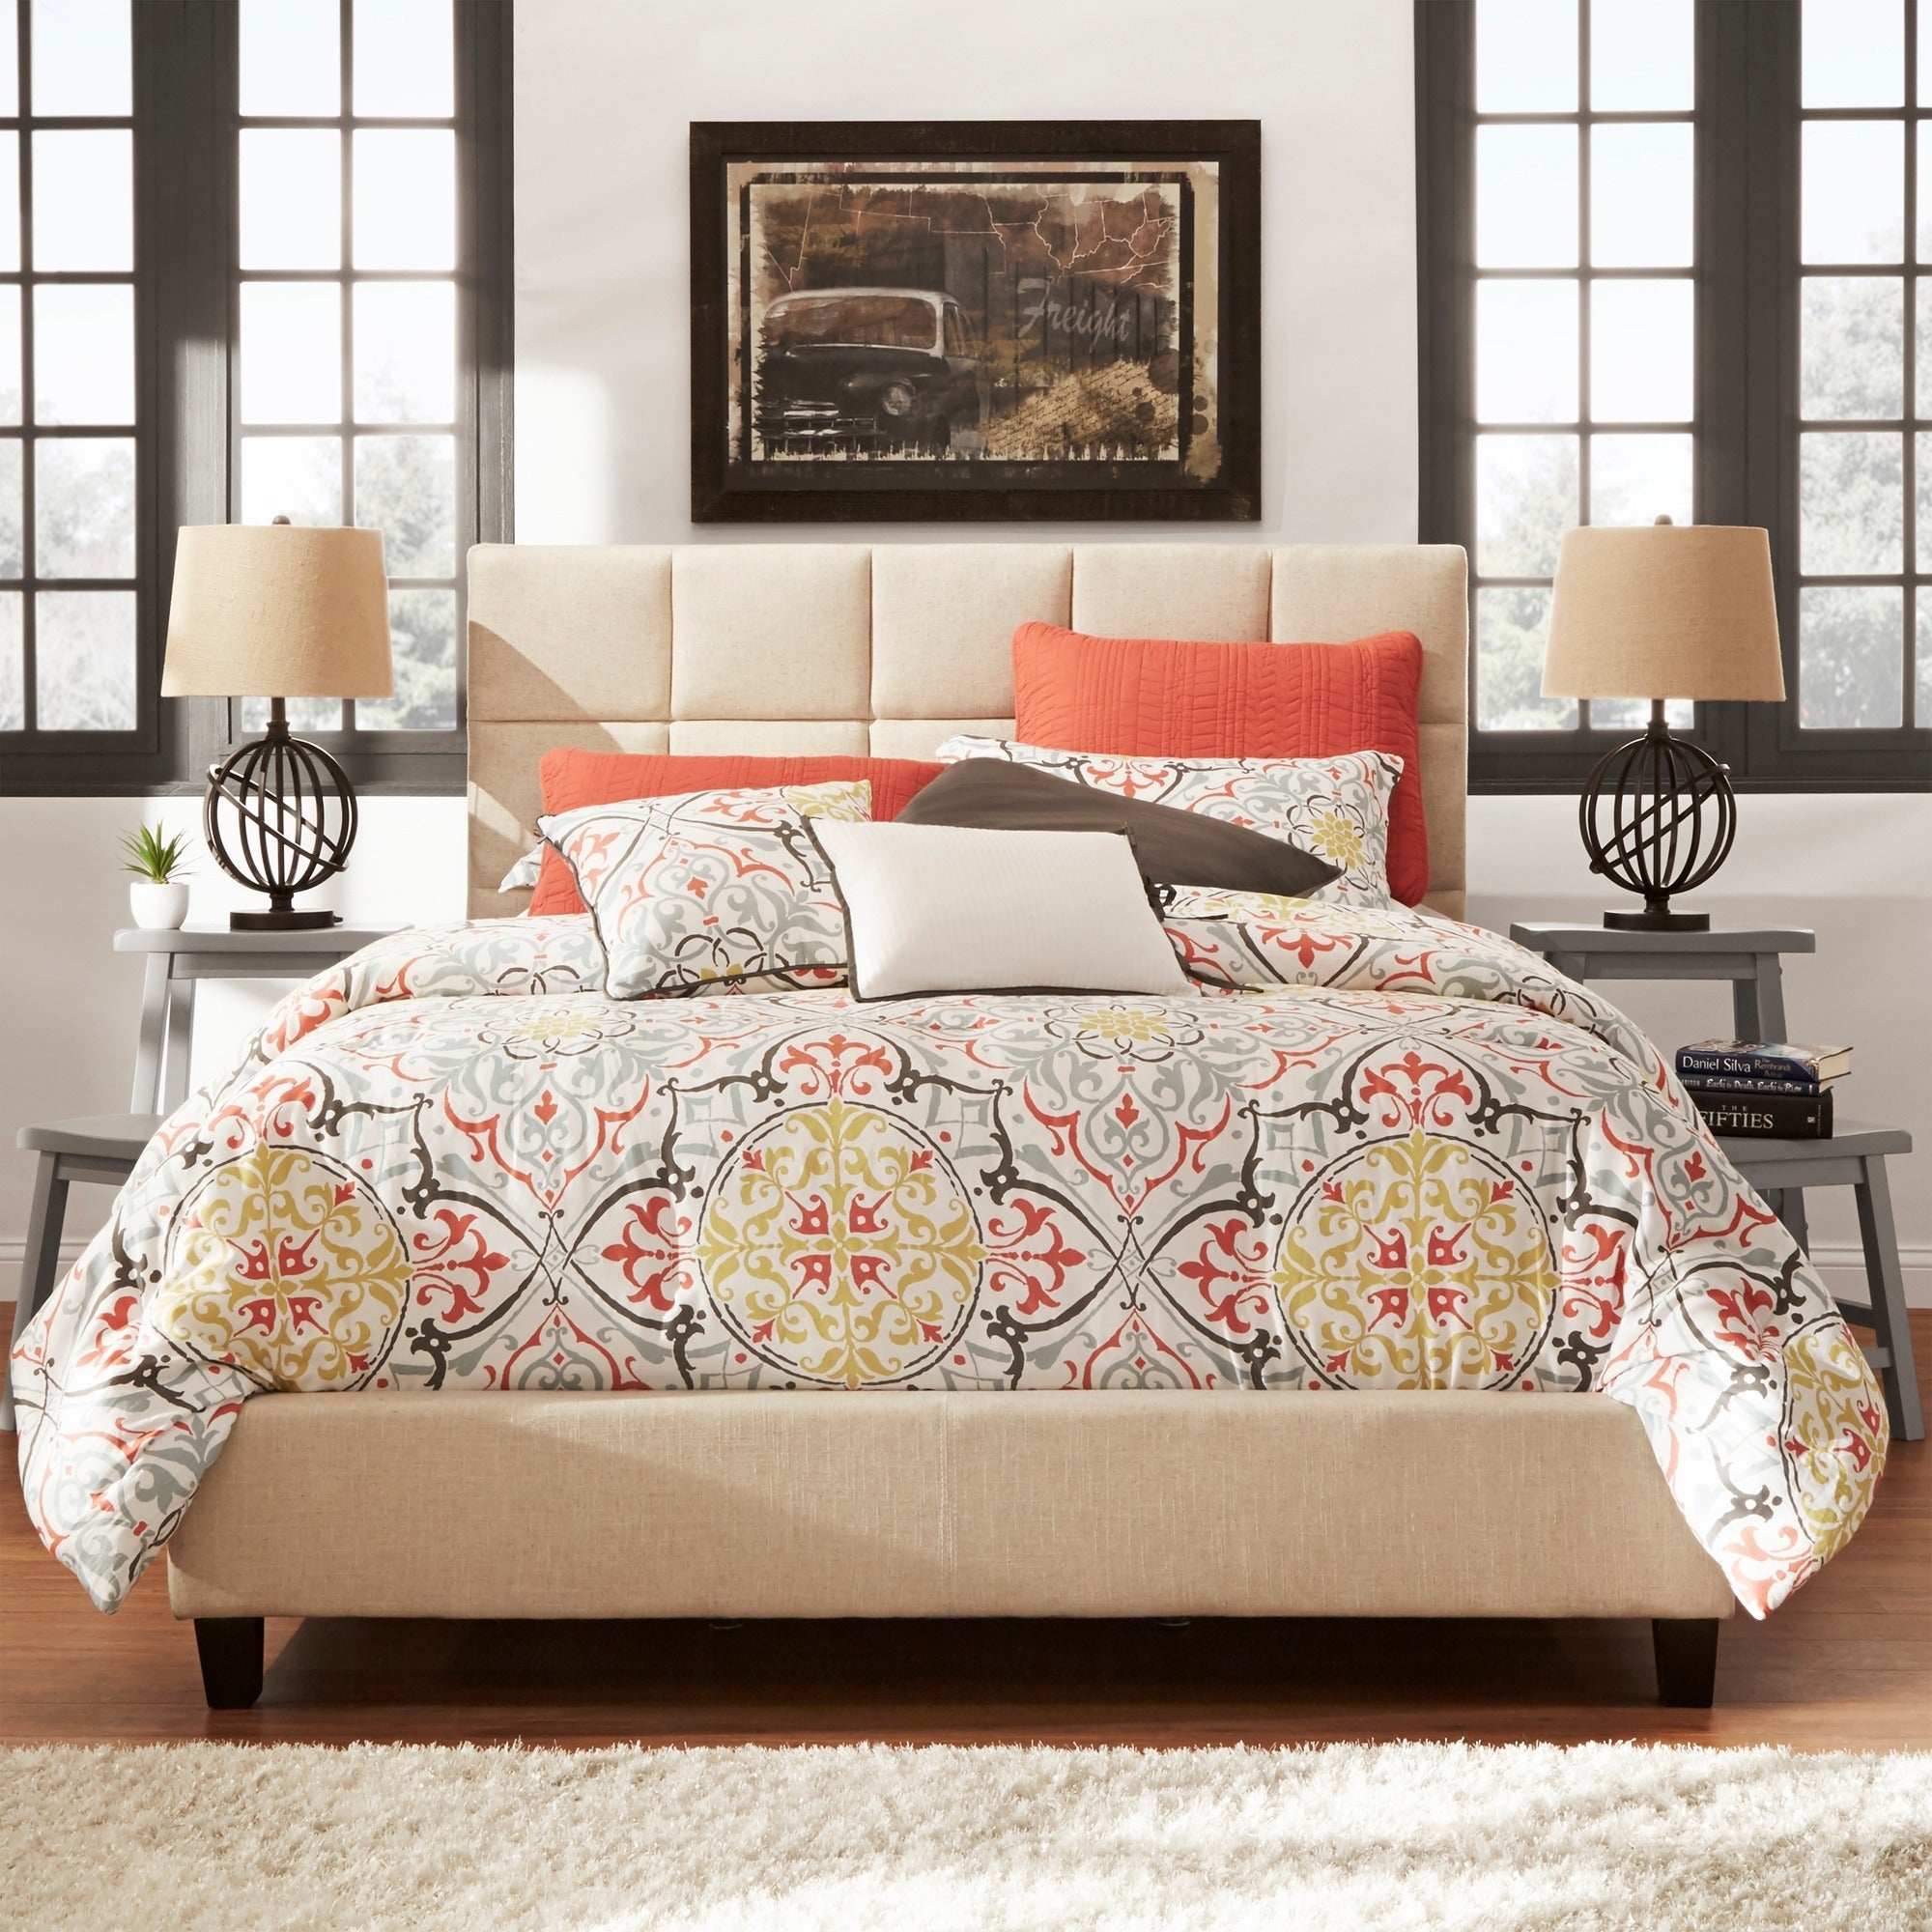 Fenton-Column-Upholstered-Platform-Bed-by-iNSPIRE-Q-